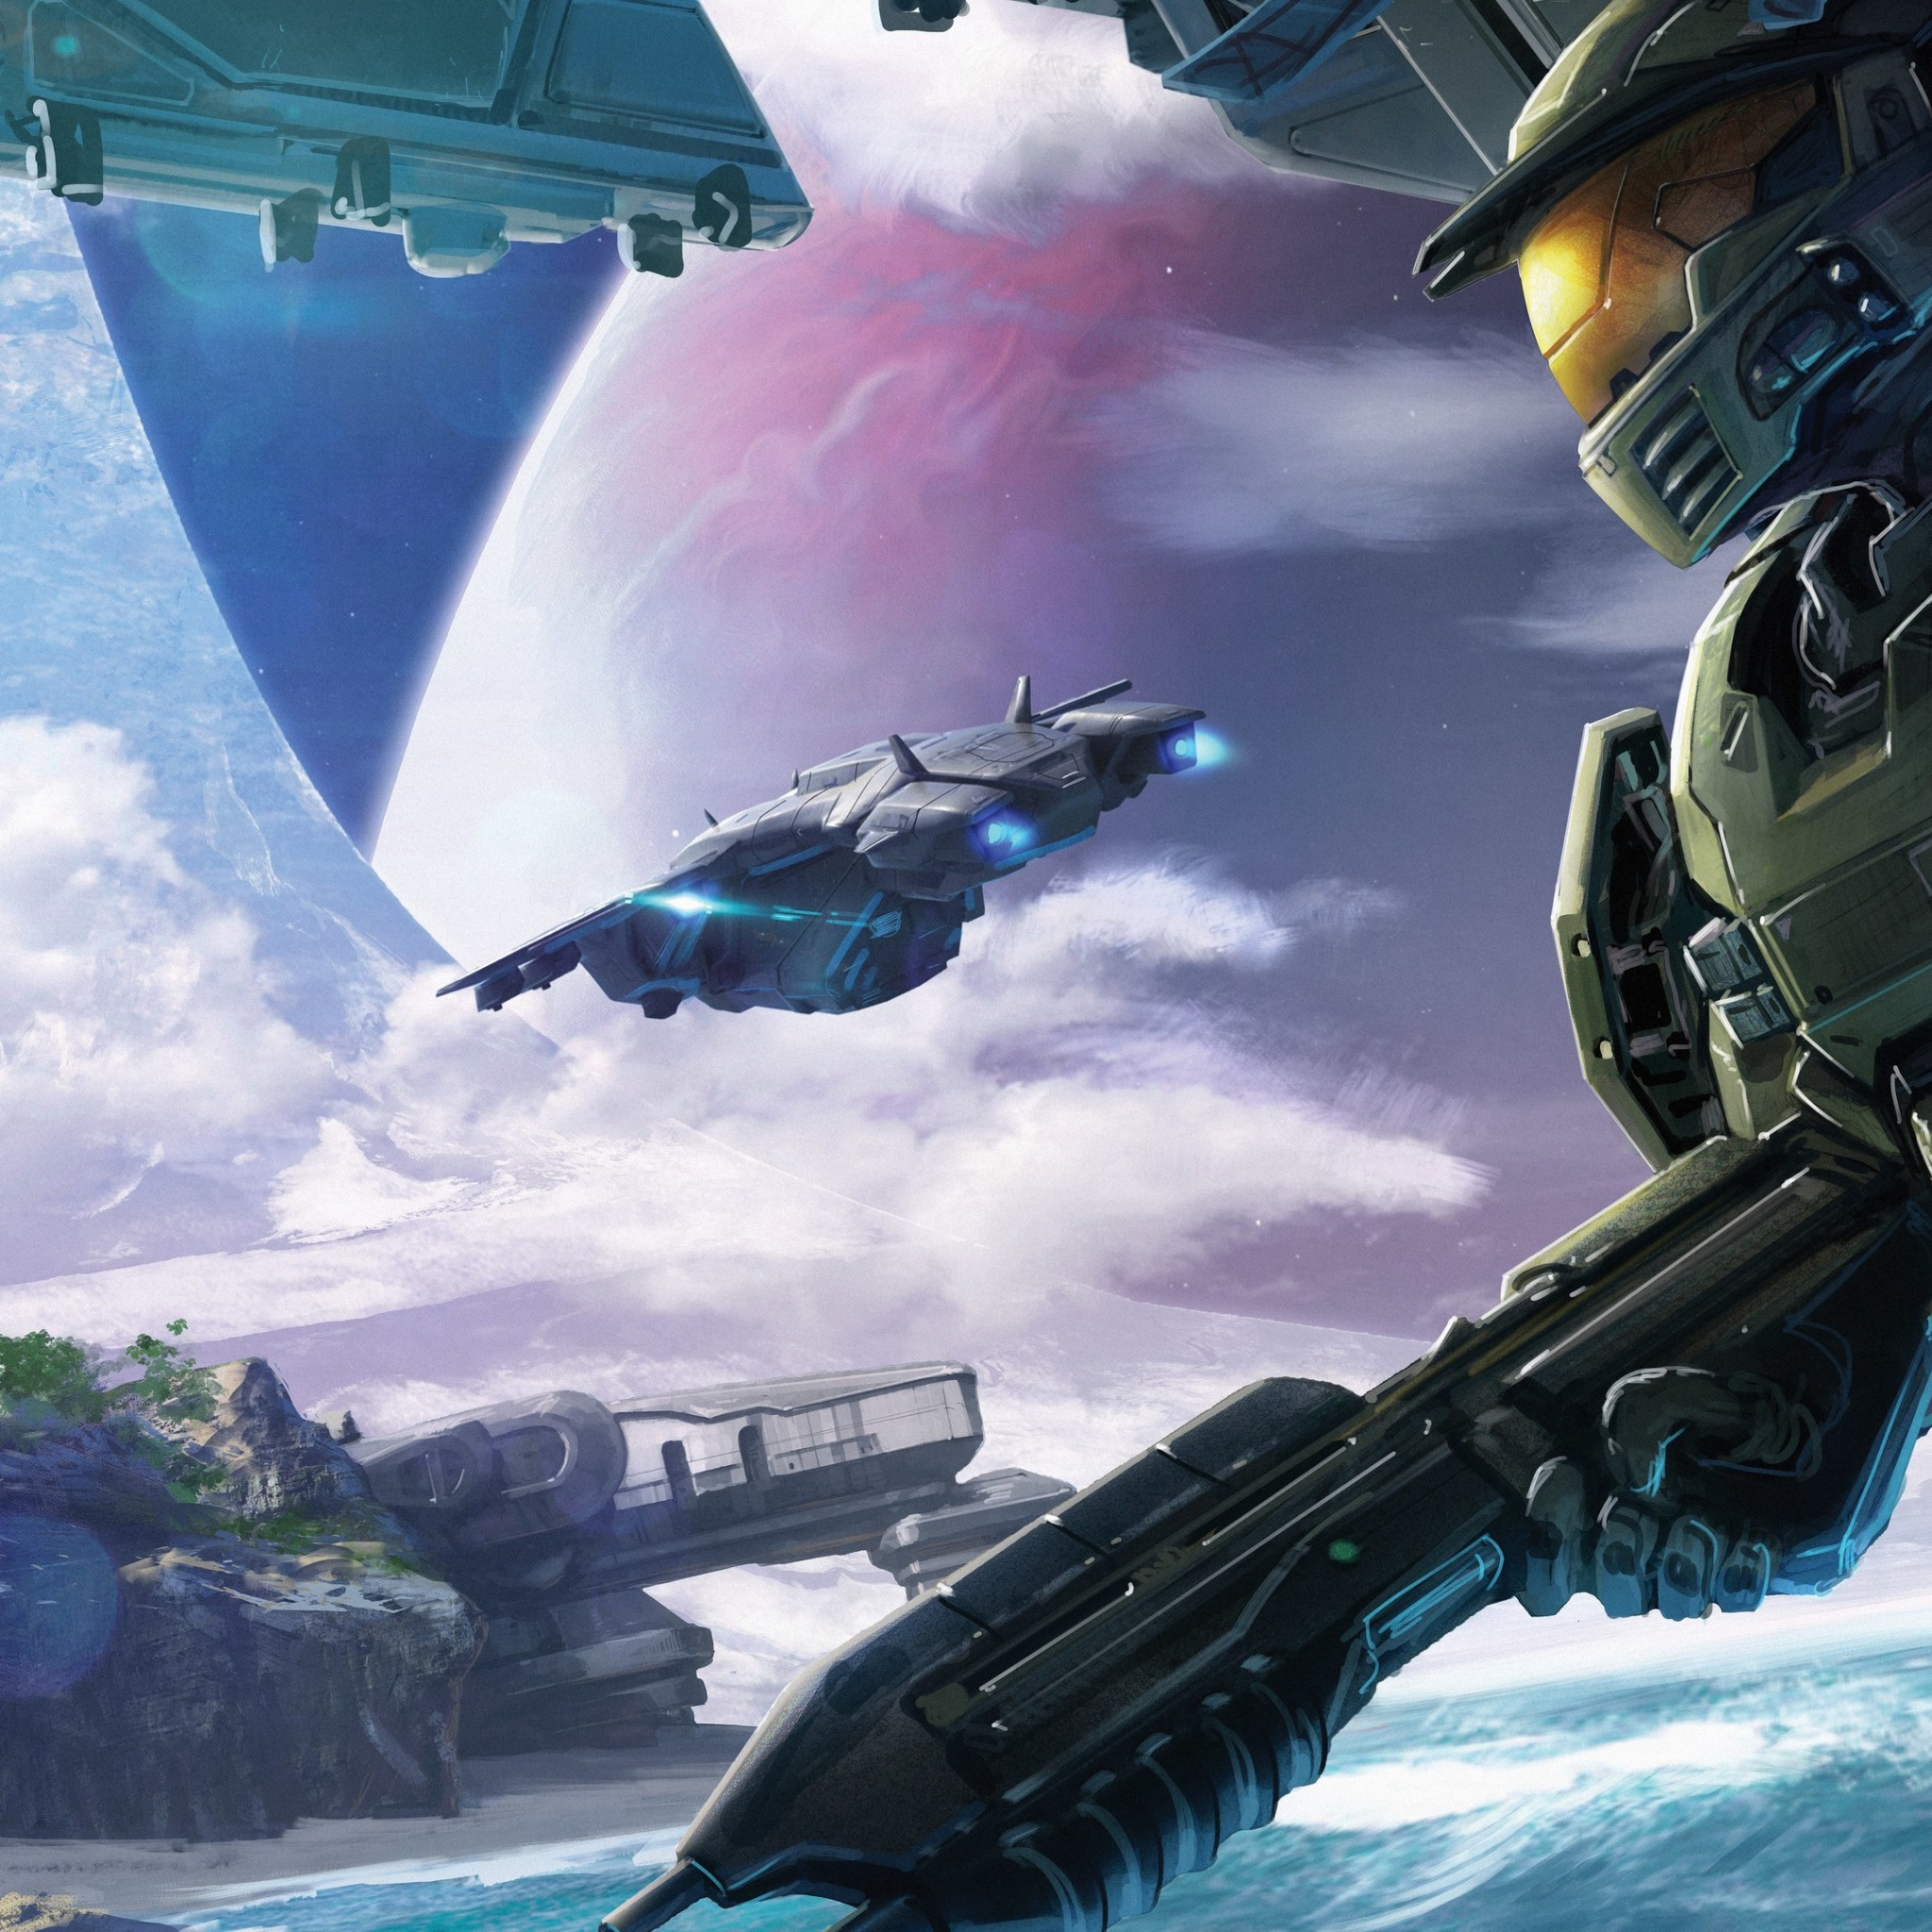 halo conflict artwork 5k